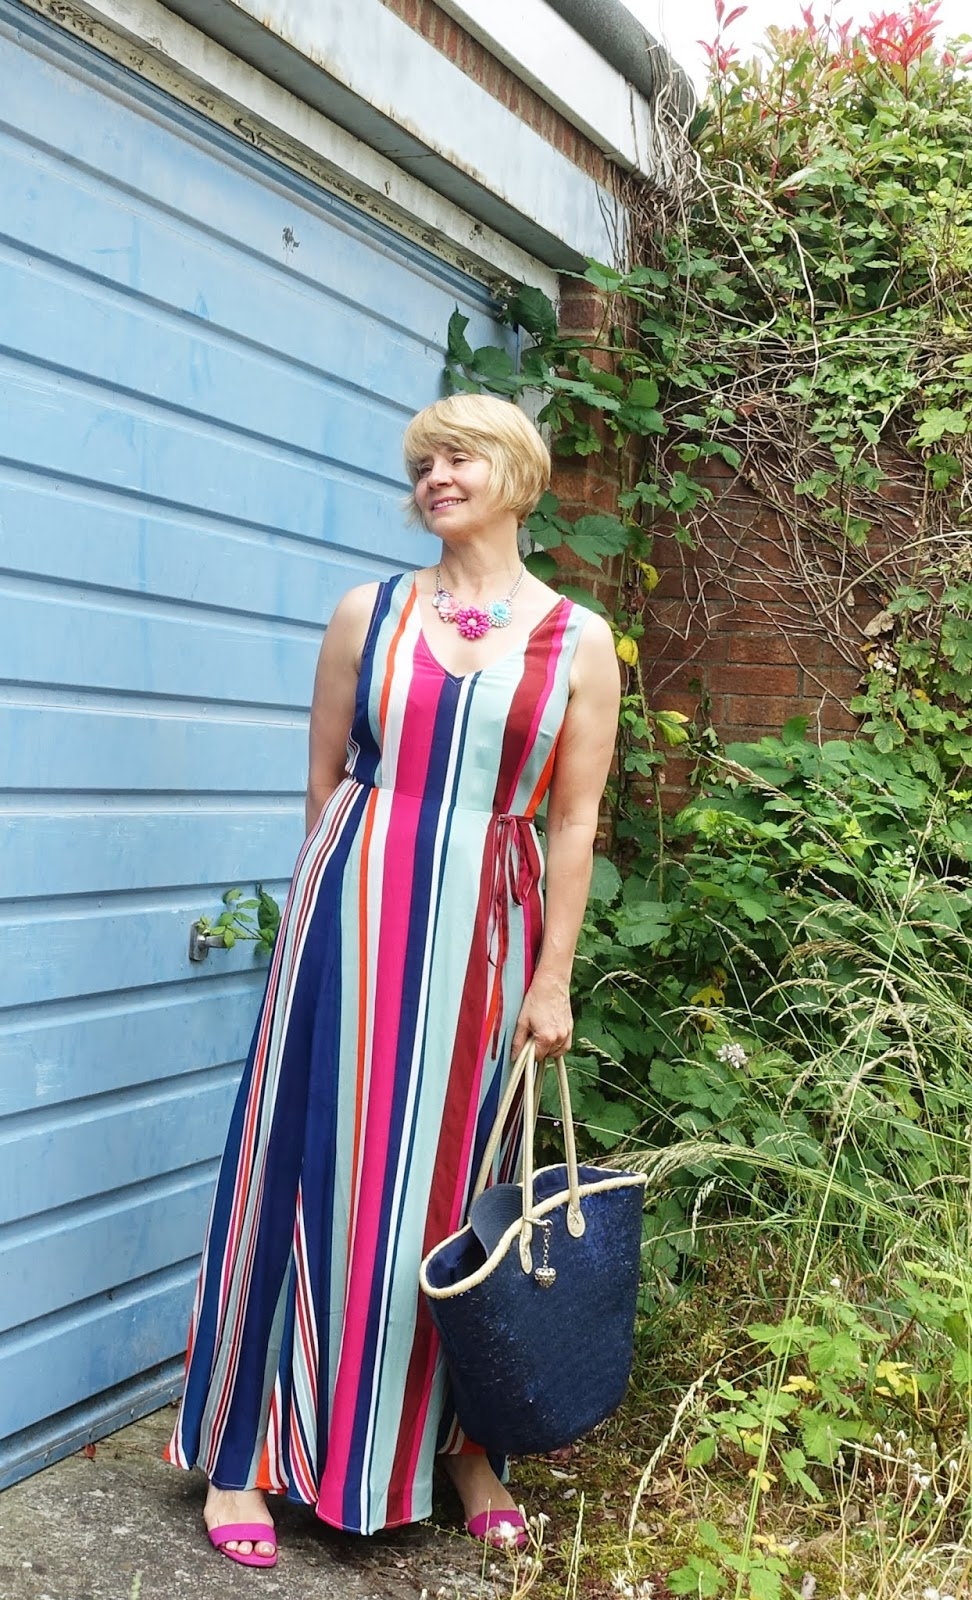 Get s cool boho vibe with a colourful striped maxi dress, ideal for long balmy summer nights. Is This Mutton, the blog for the sassy over-45s, has found a great floaty dress from Monsoon.